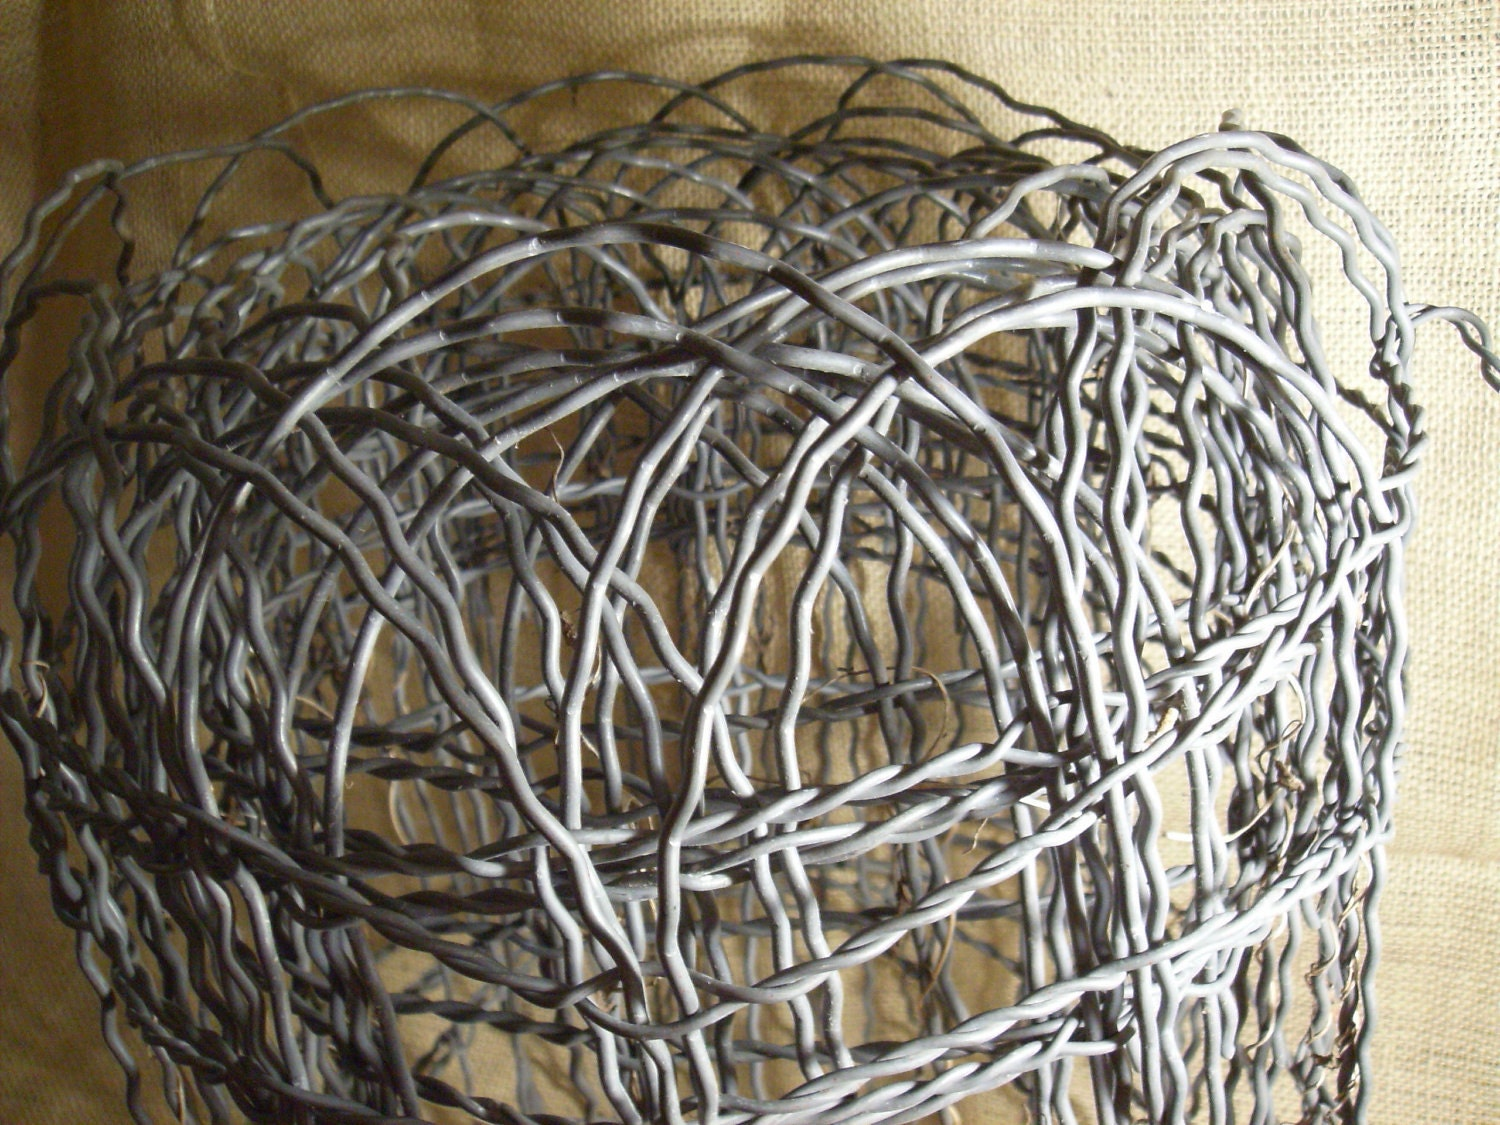 15 ft of crimped curly wire garden fence SO MANY IDEAS